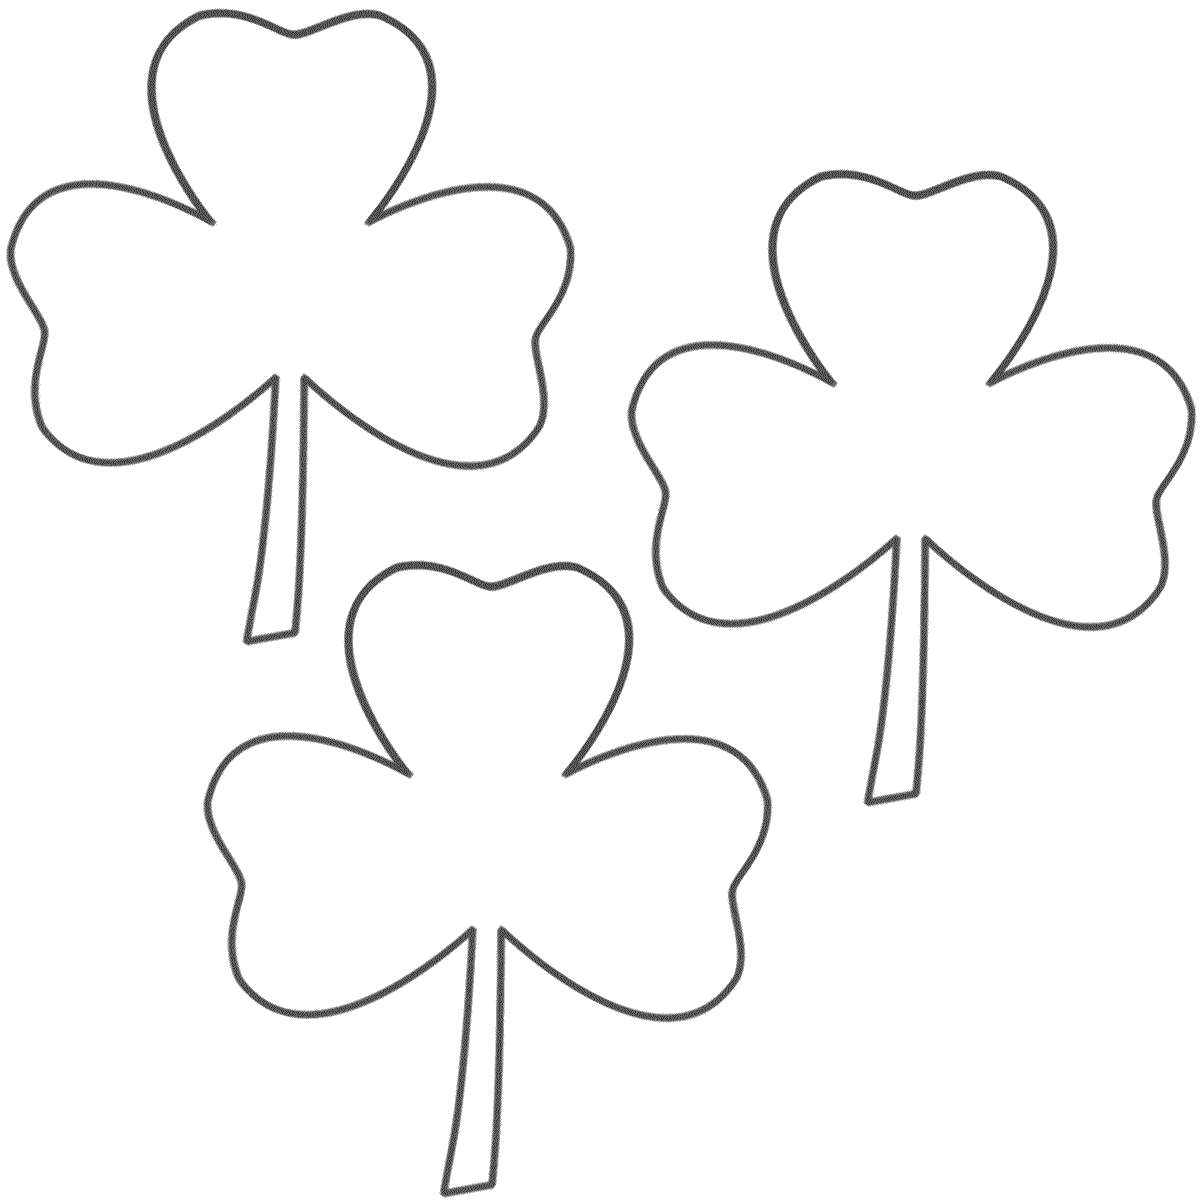 St Patrick Day Shamrock Coloring Pages - Coloring Home